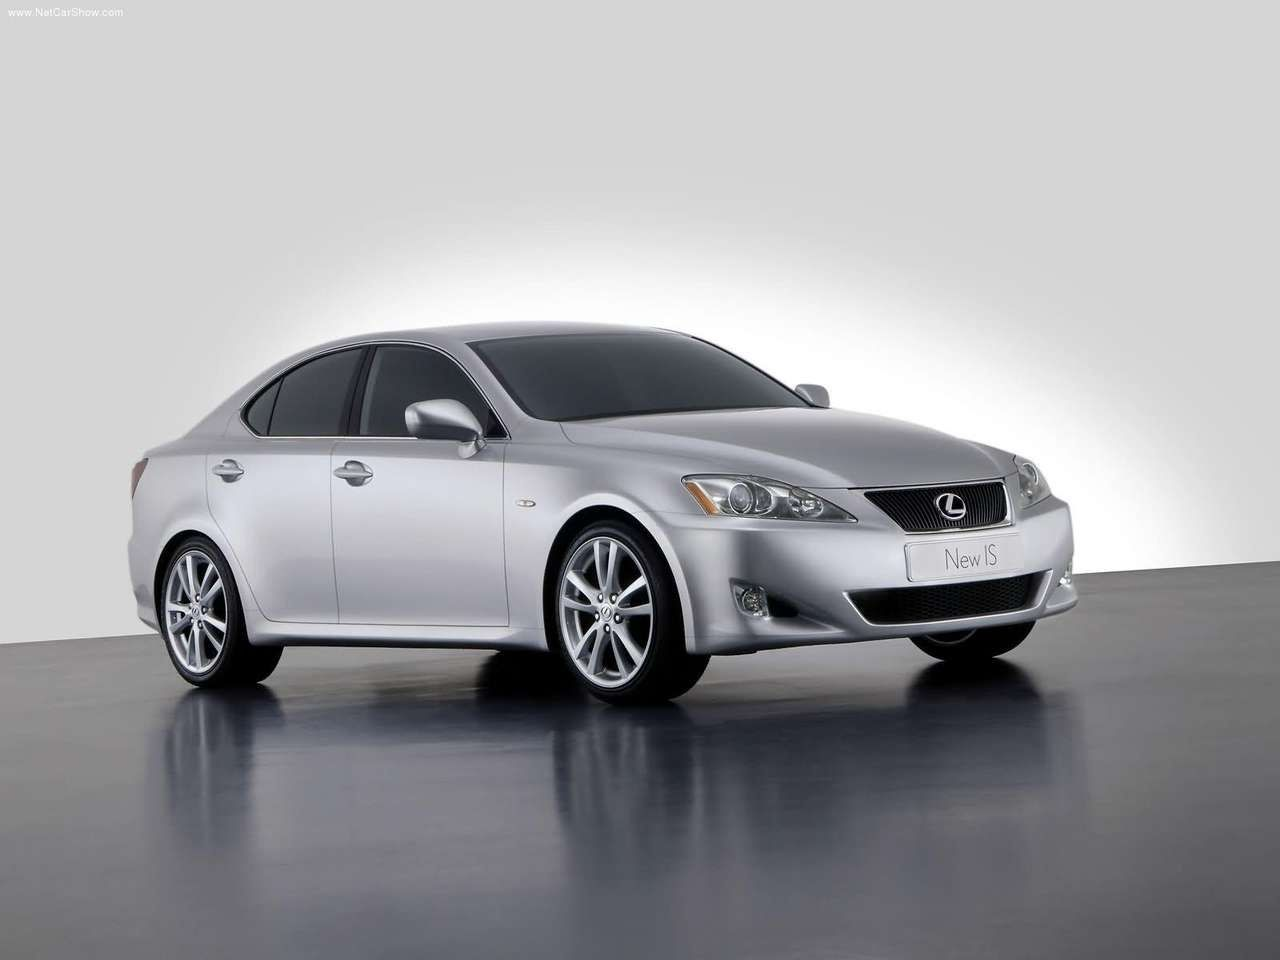 Lexus Is 220d Wiring Diagram Opinions About Enjoy Free Pdf Download Of Electrical For Is250 Rh Pinterest Com 200